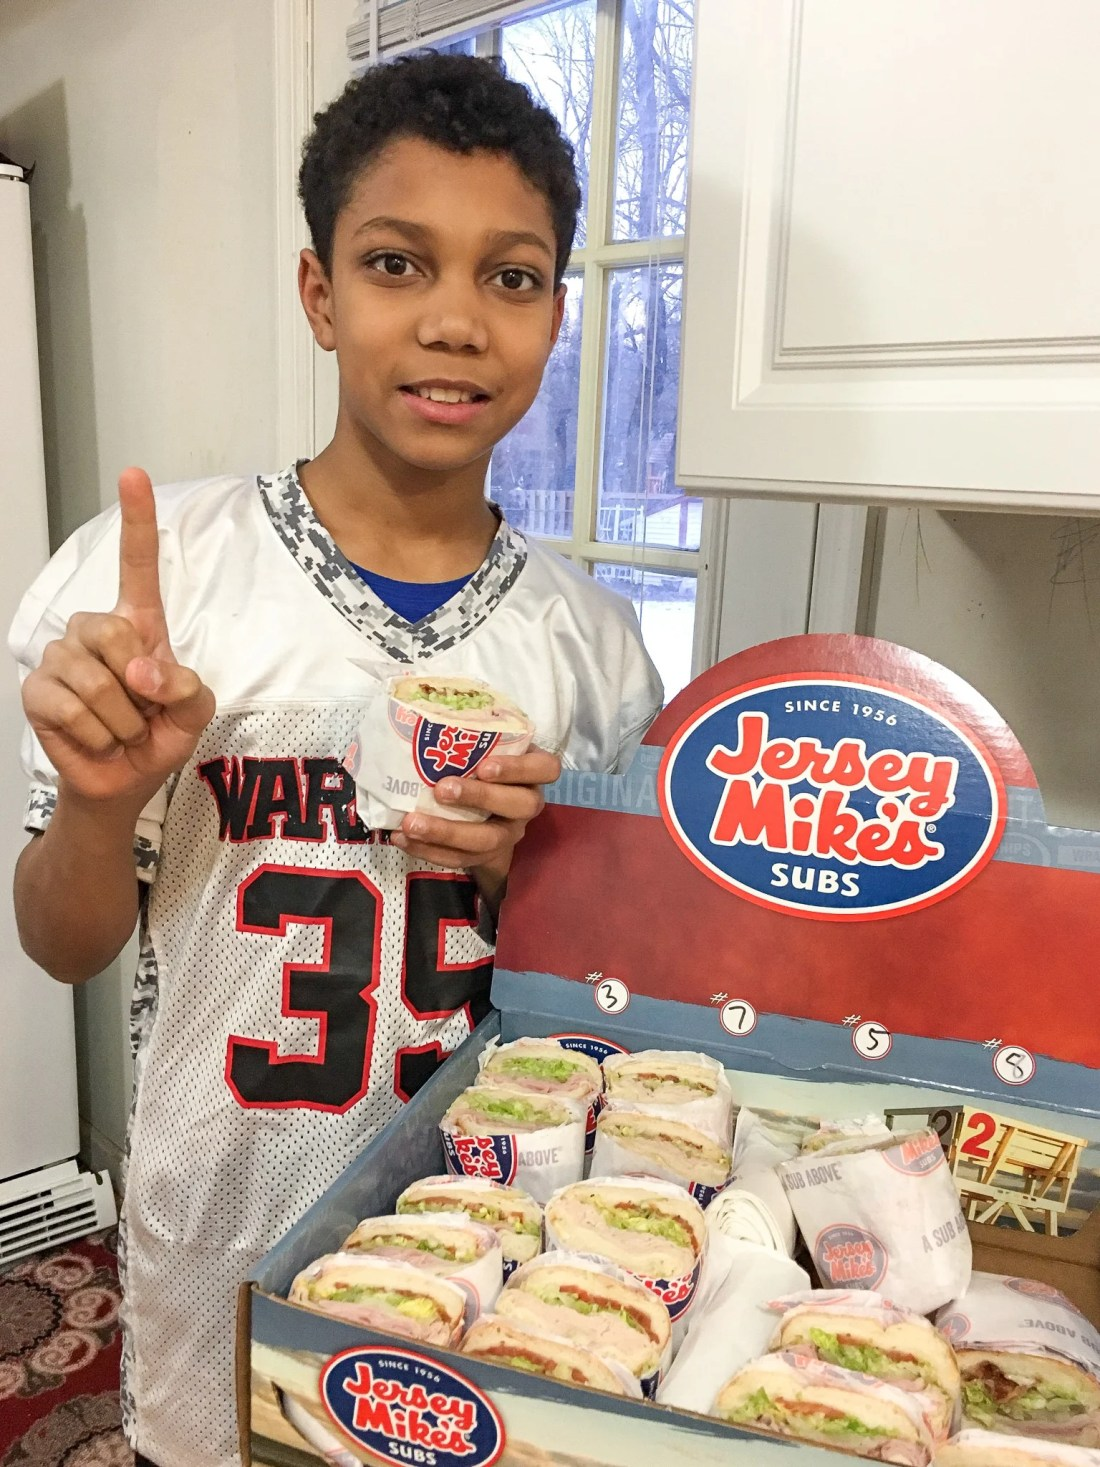 Number 1 Jersey Mikes Catering Sub Box. Stop stressing about what everyone will be eating on the Big Game Day. Take advantage of some awesome No-Cook Easy Game Day Snack Idea's on the blog now.